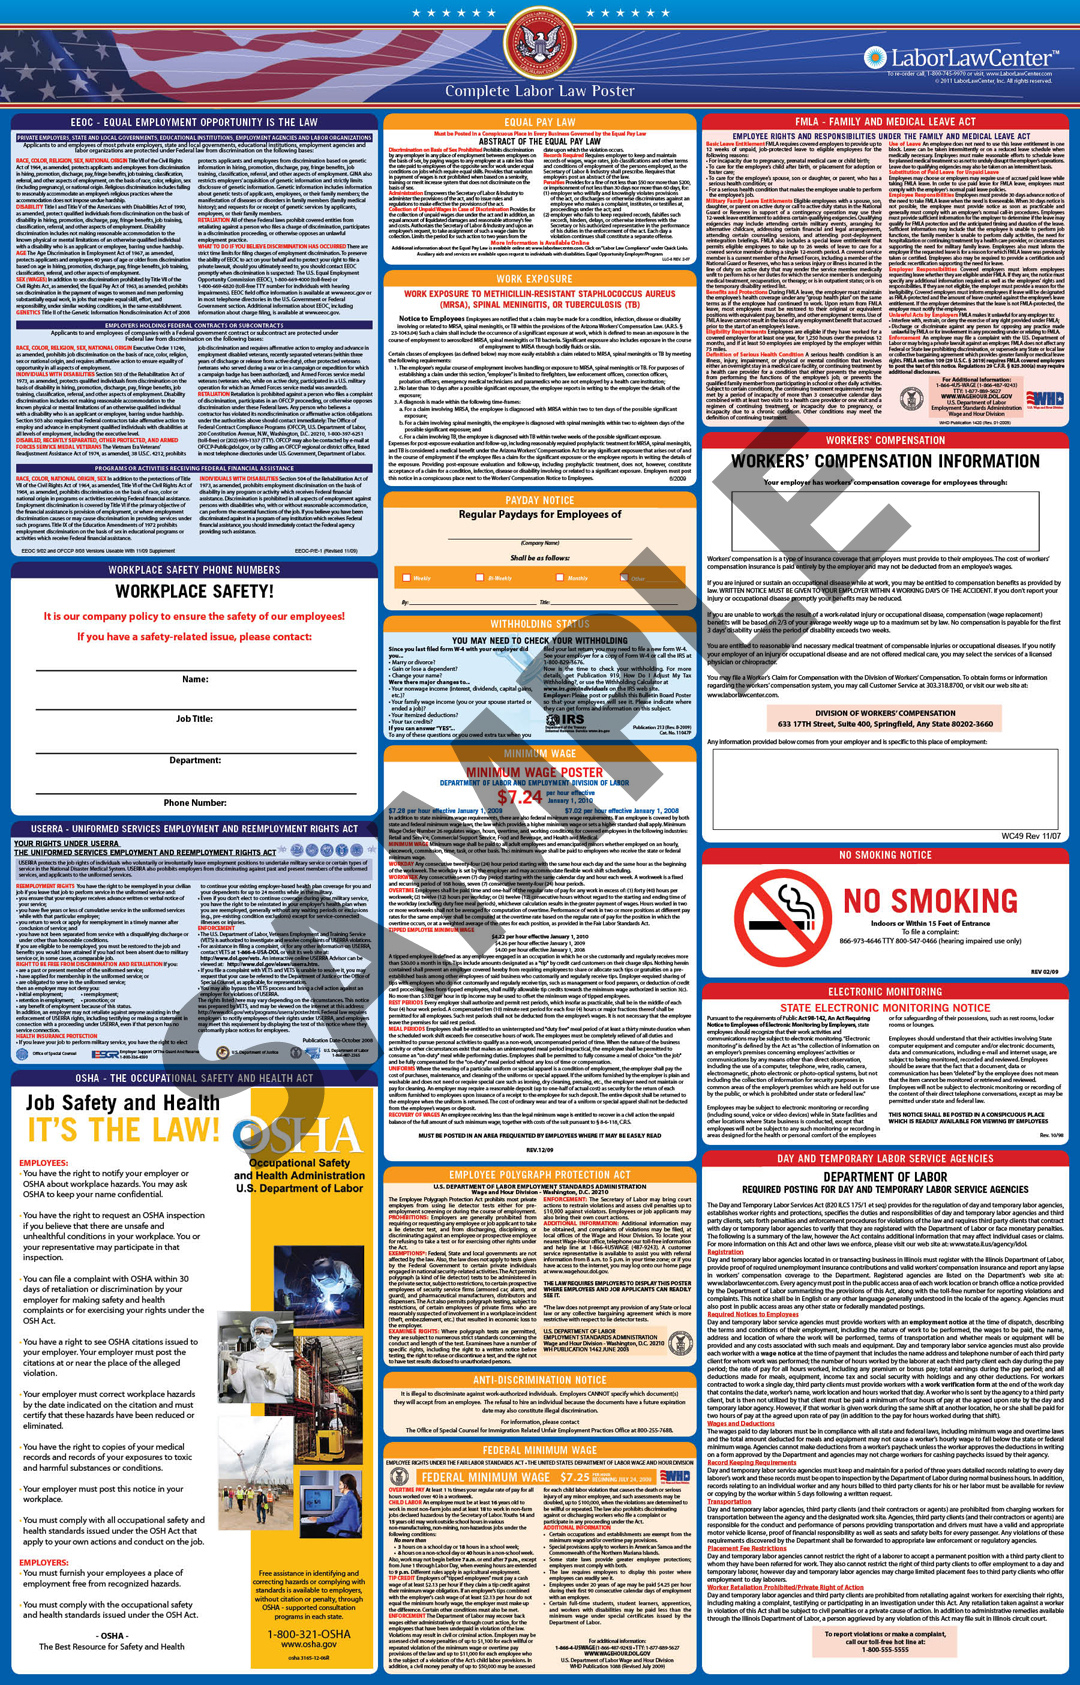 Faqs On Labor Law Posters | Laborlawcenter